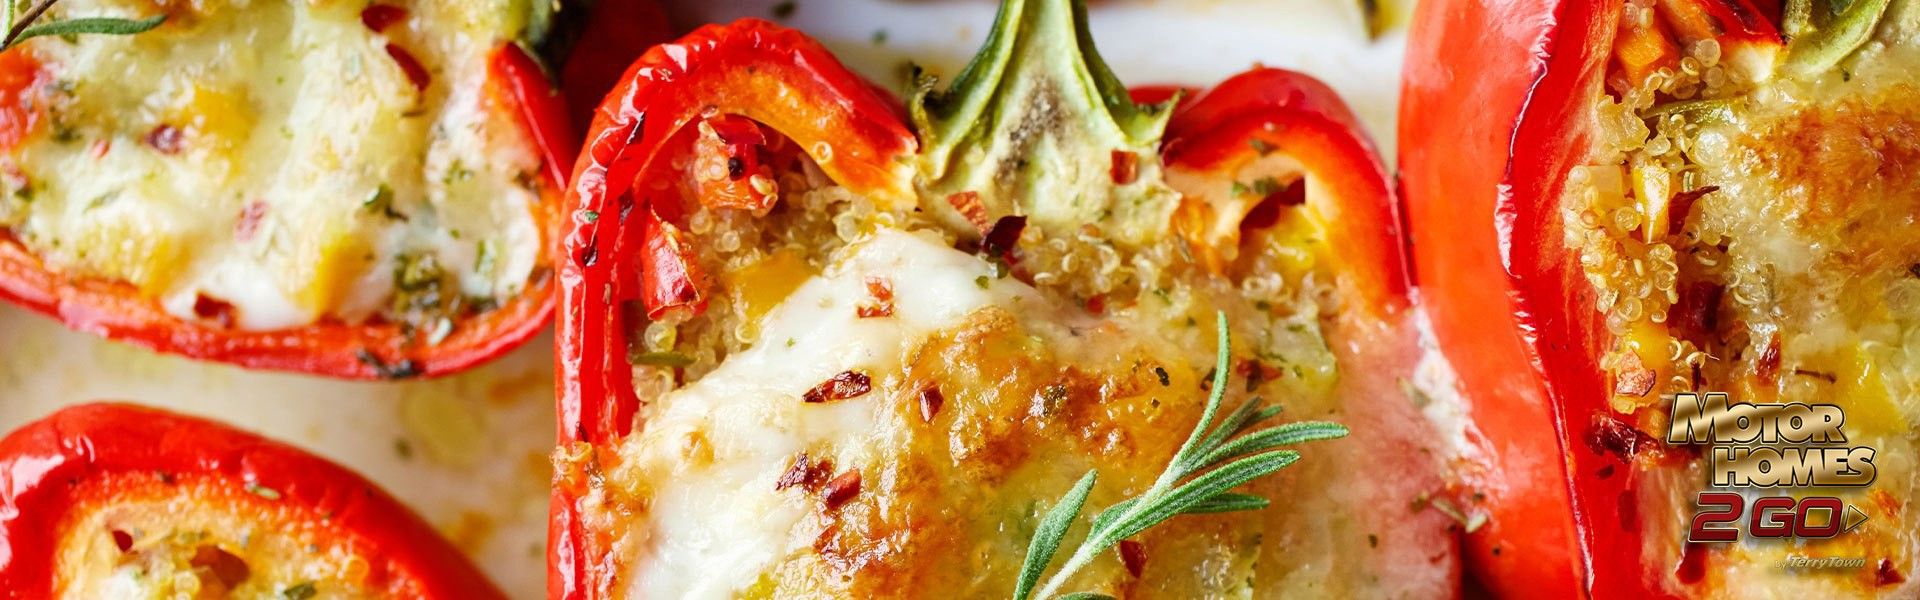 Stuffed bell peppers Banner